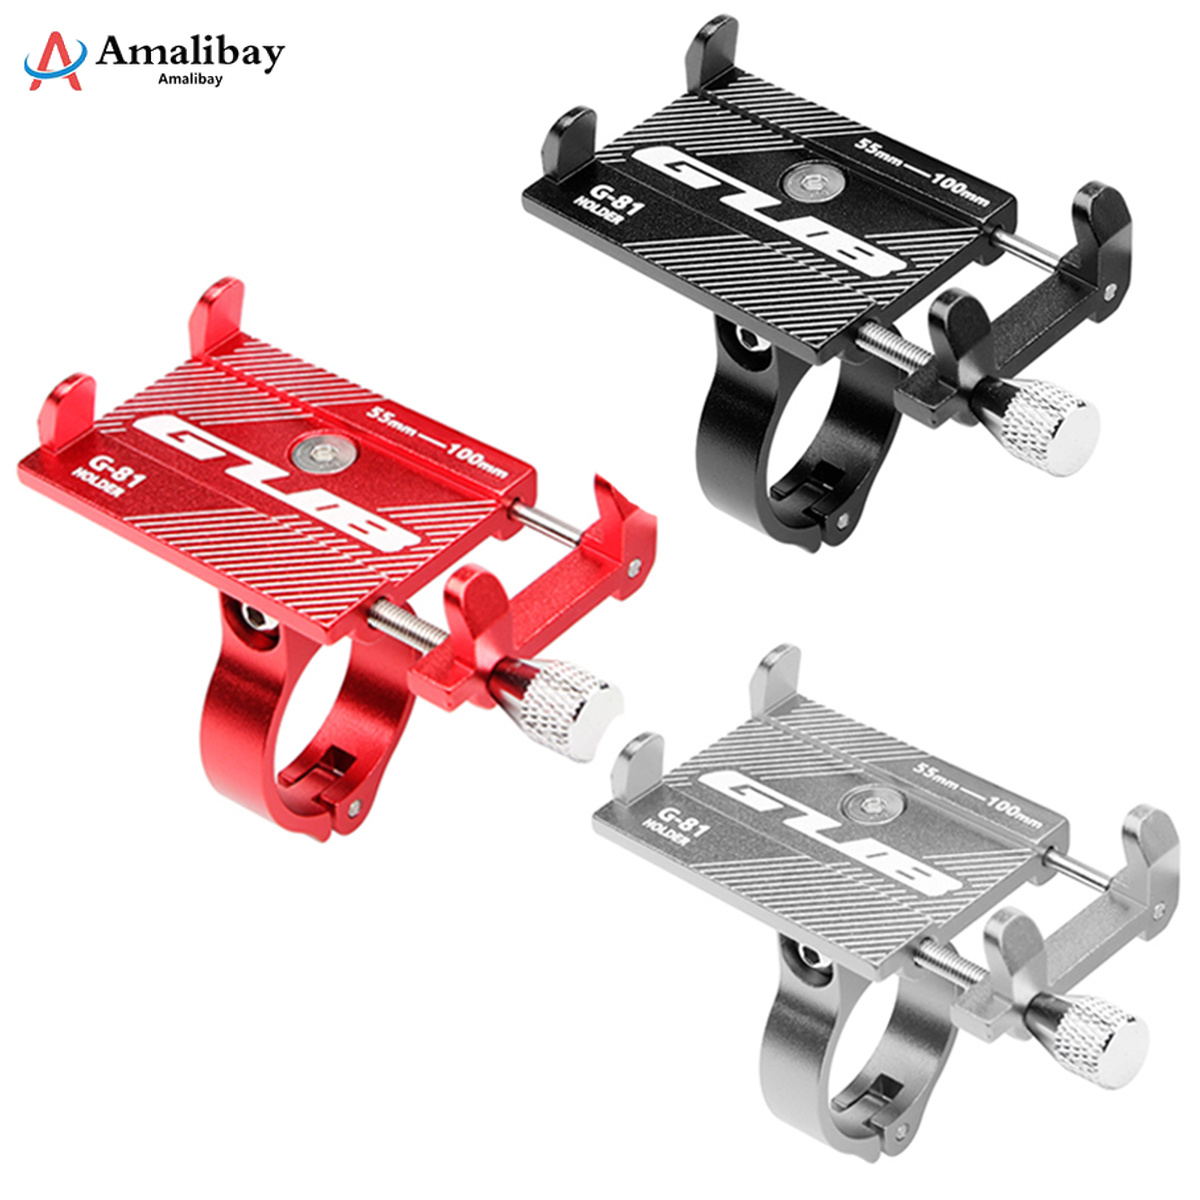 Xiaomi M365 Adjustable Anti Slip Mobile Phone Stand Holder M365 Pro Electric Scooter Qicycle EF1 Handlebar